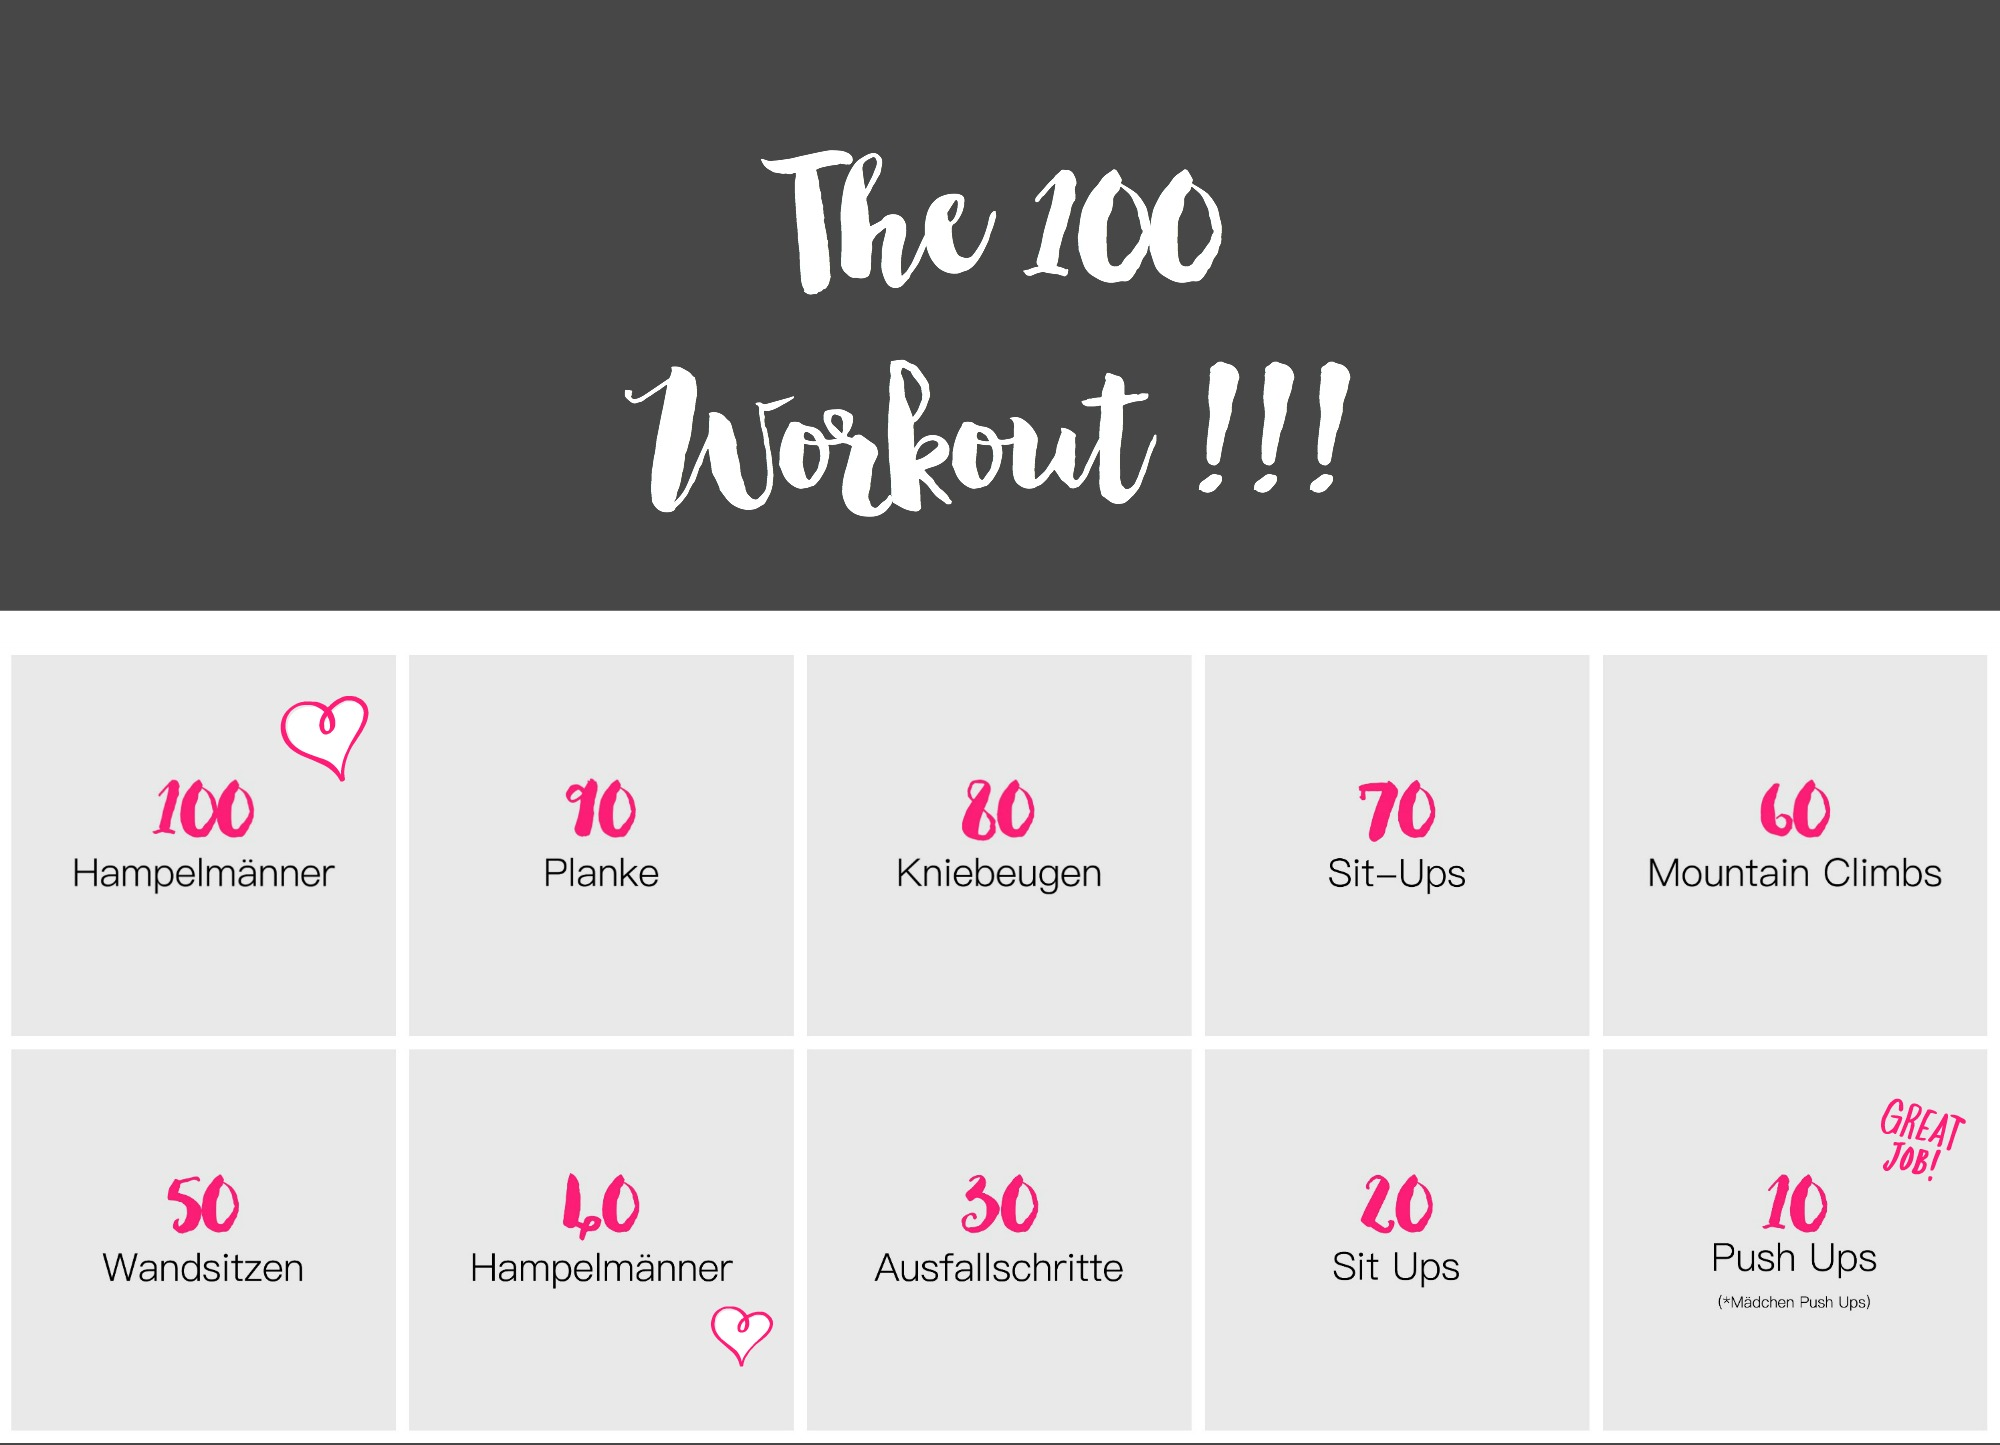 Home Fitness. The 100 Workout!